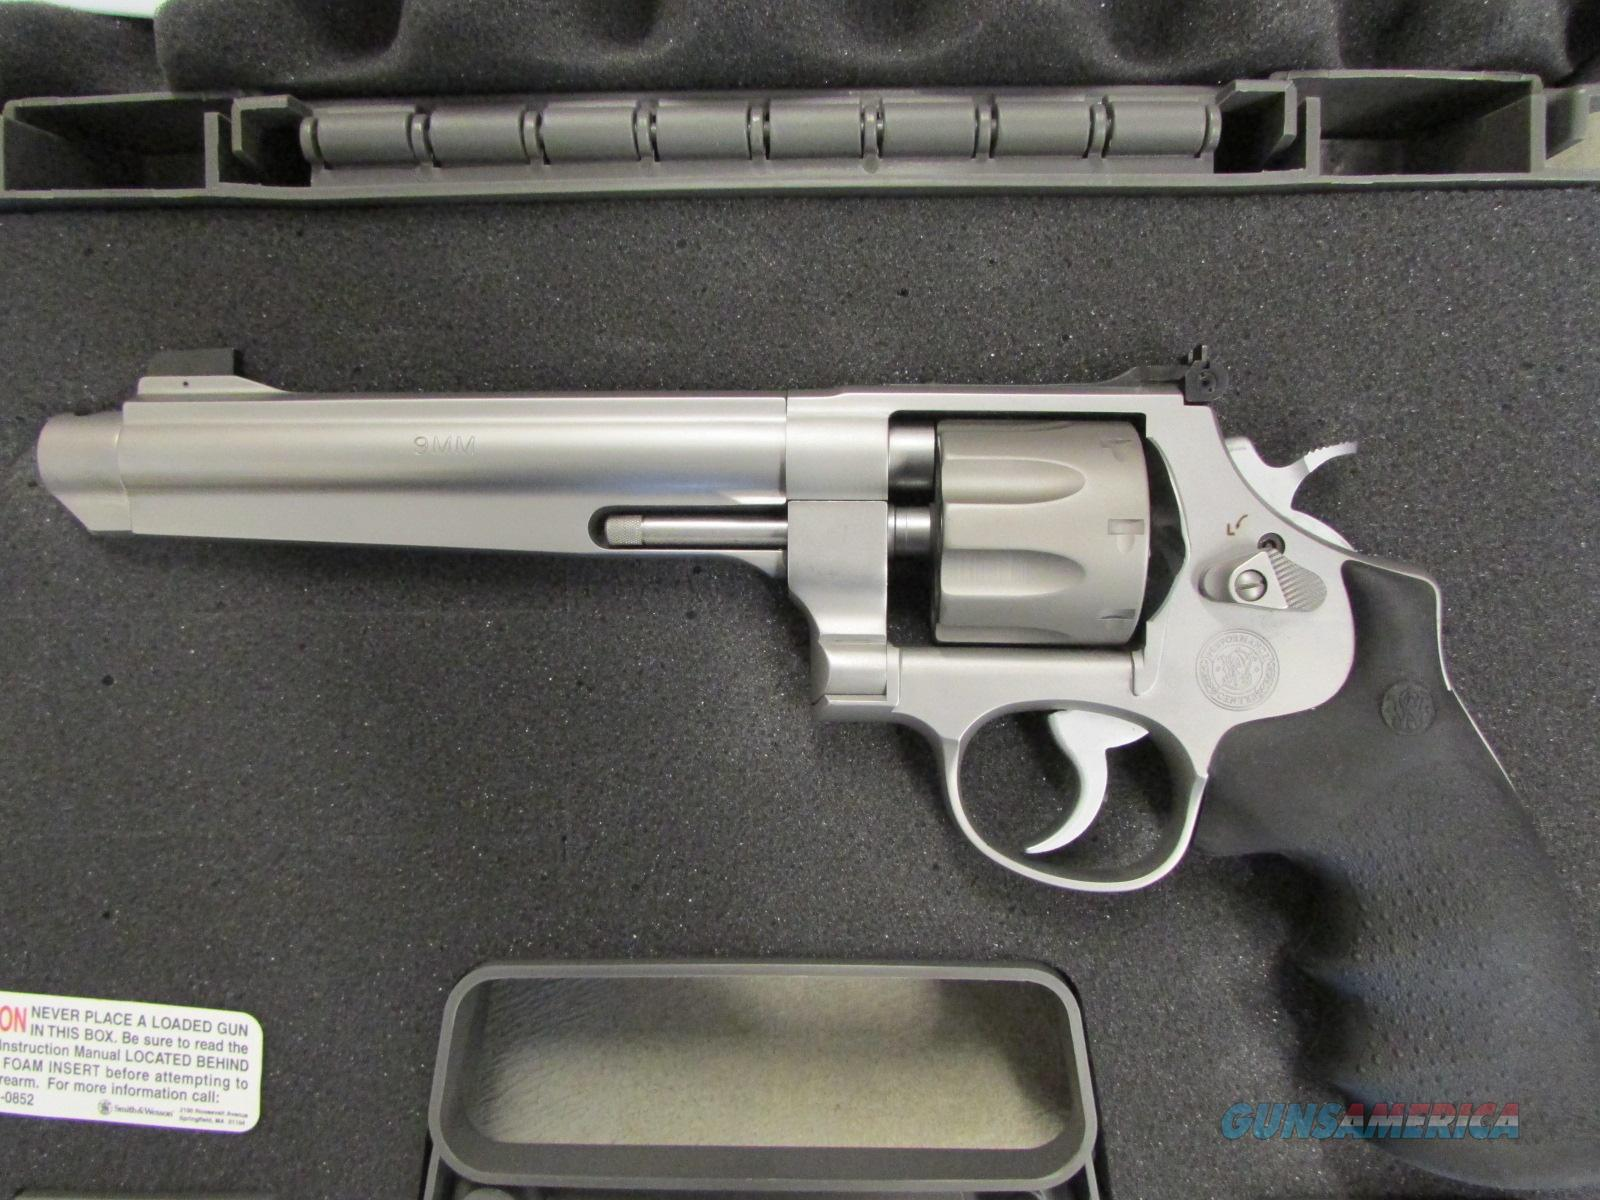 Smith & Wesson Model 929 Jerry Miculek Performance Center 9mm 170341  Guns > Pistols > Smith & Wesson Revolvers > Performance Center